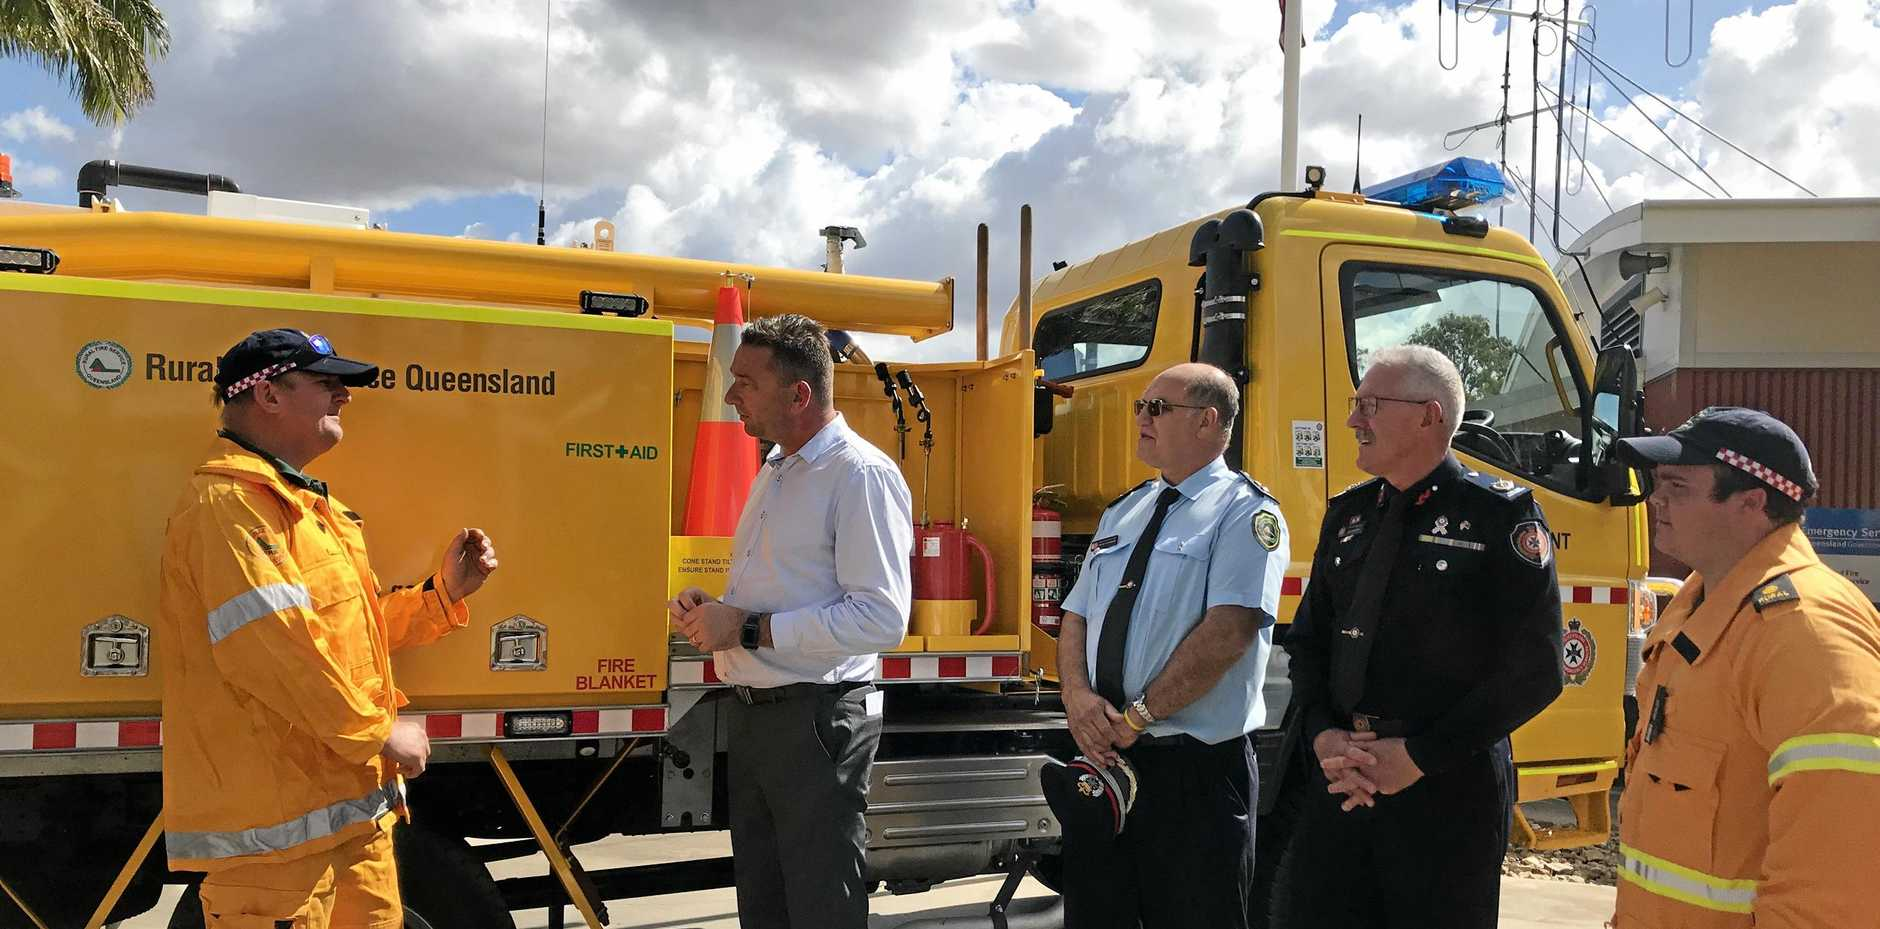 FIRE SEASON: Belmont Fire Brigade's Bradley Weisse discusses fire season with Fire and Emergency Services Minister Craig Crawford.